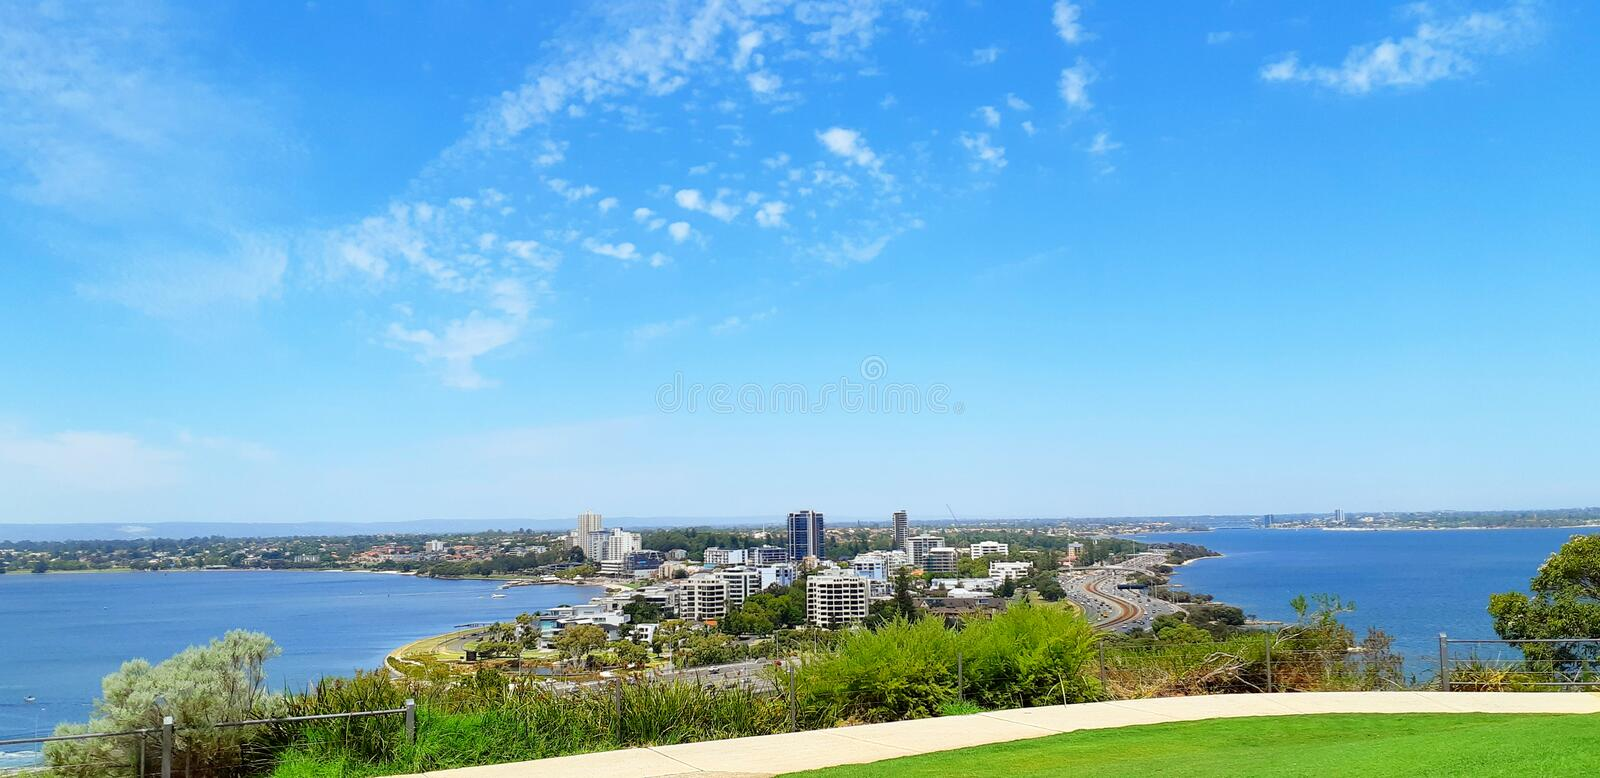 View in Kings park. Landscape, building stock image